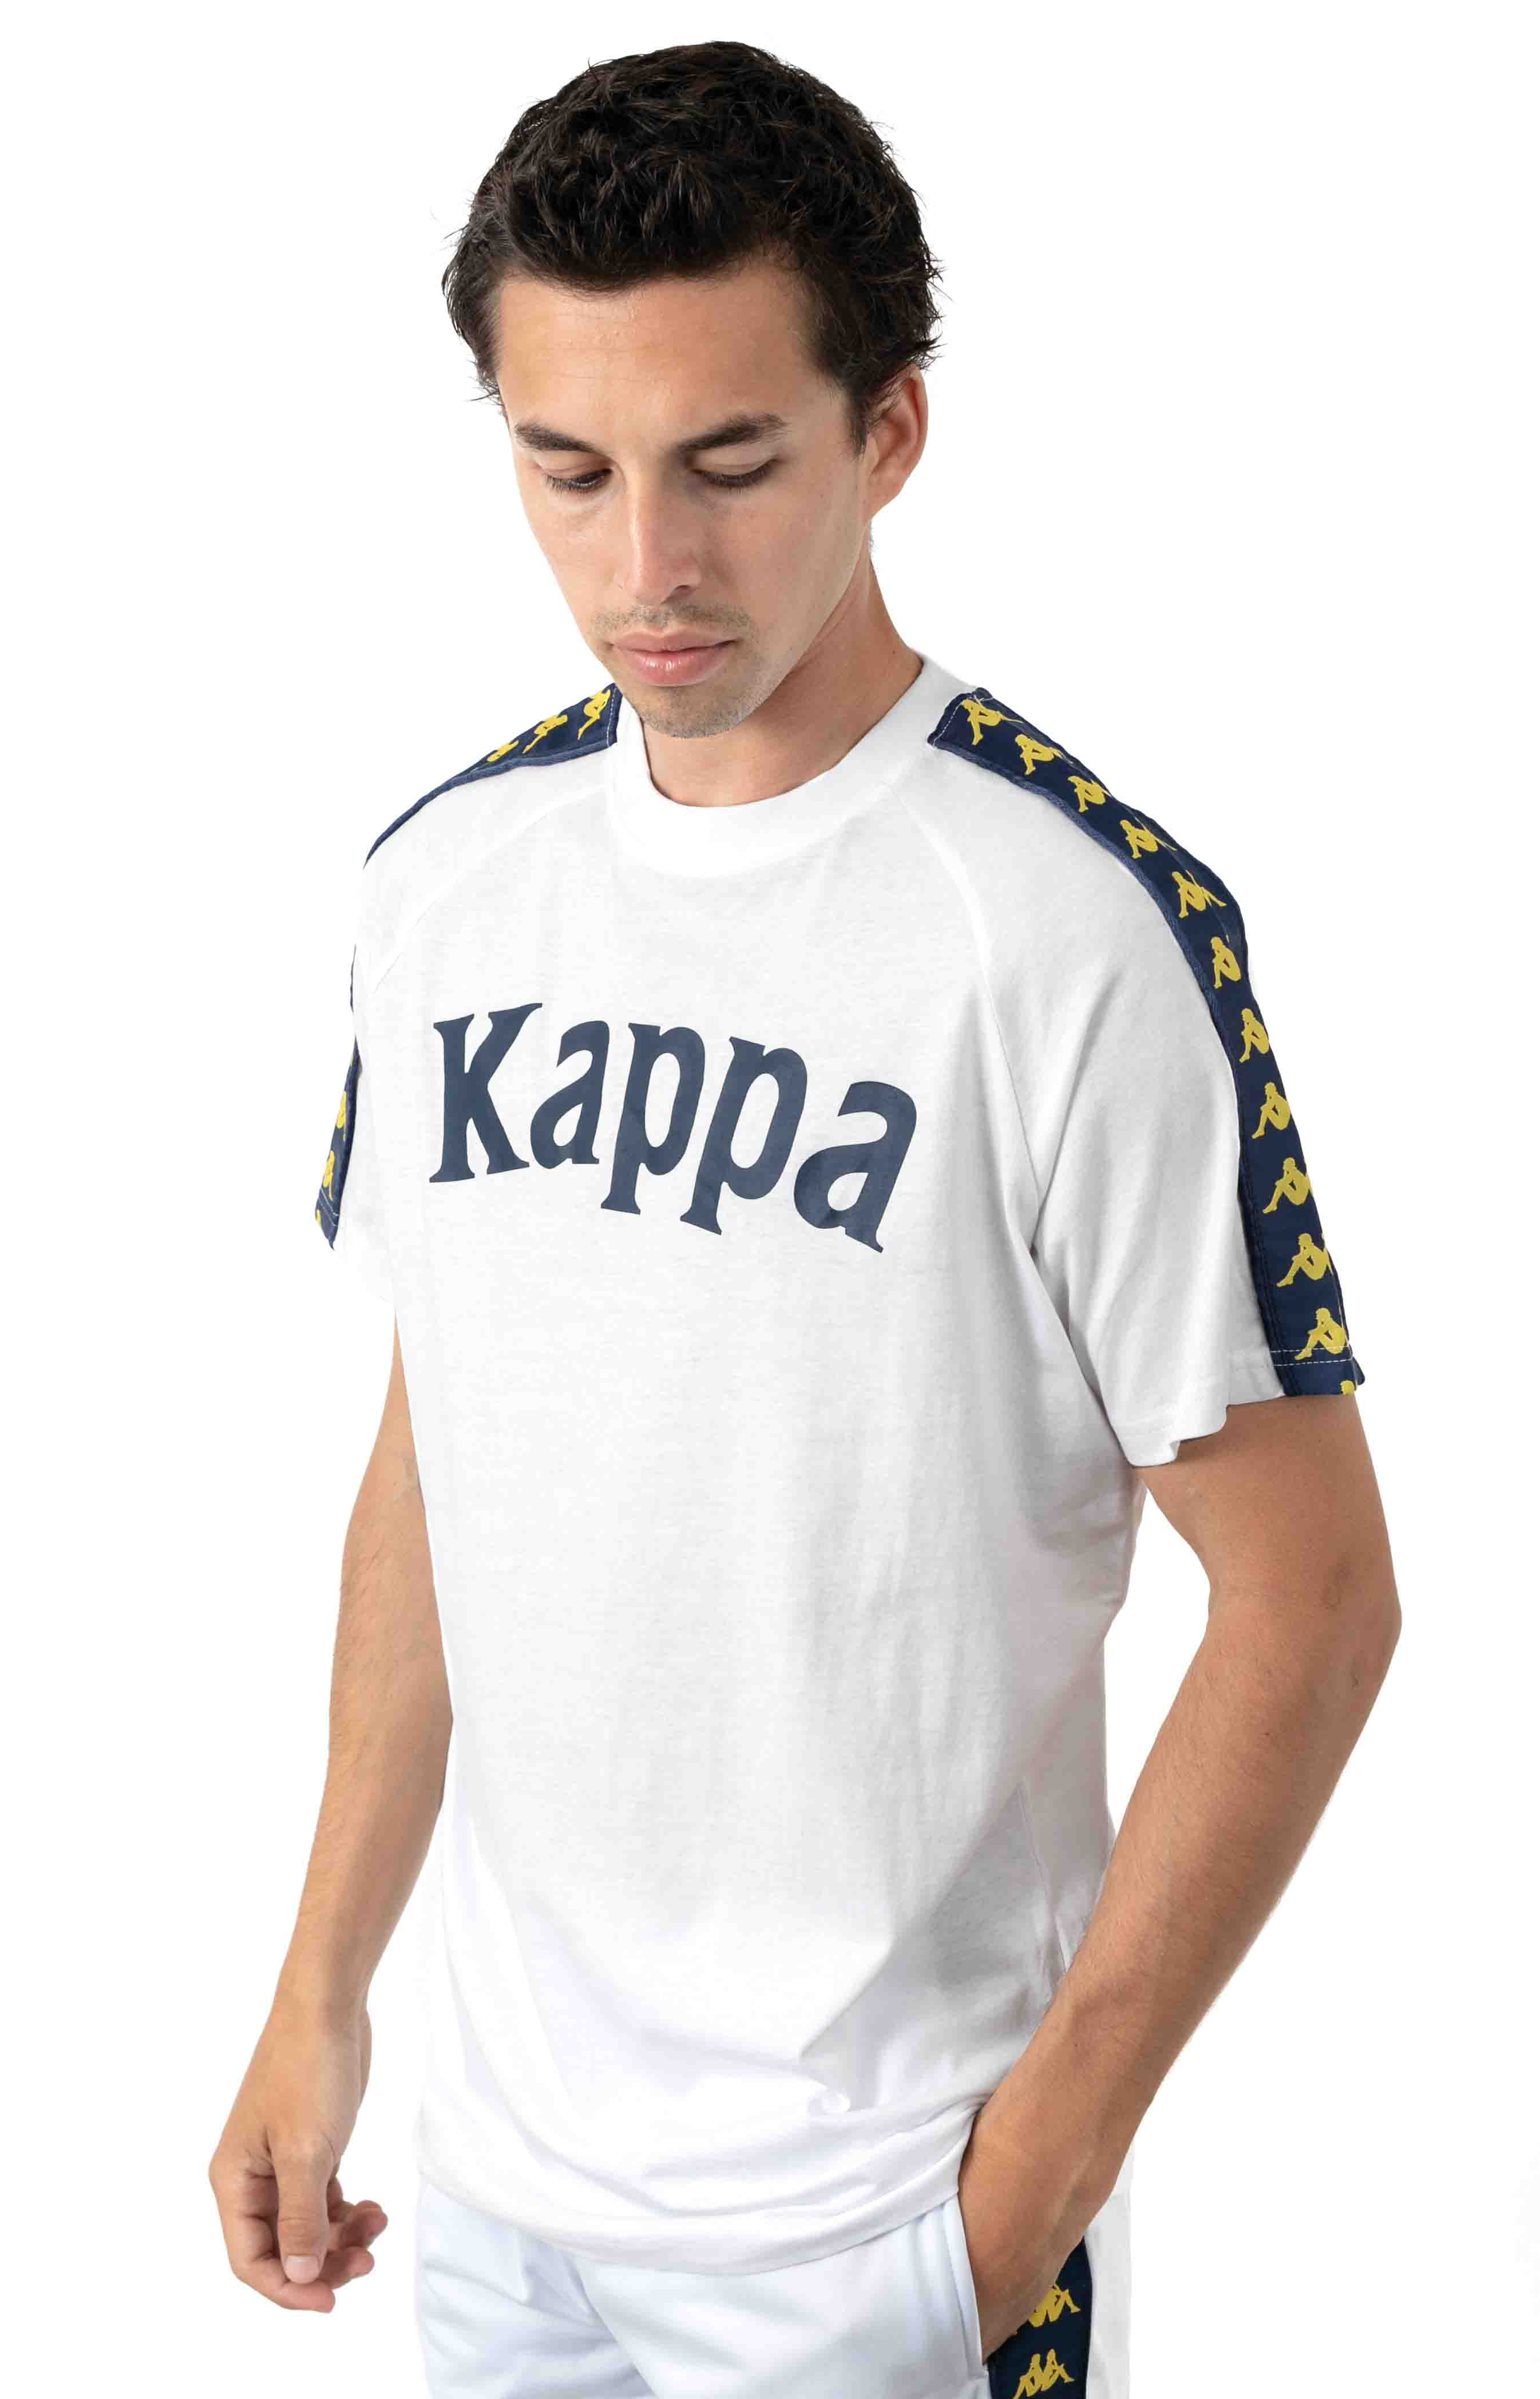 222 Banda Balima T-Shirt - White/Blue Mid/Yellow 2